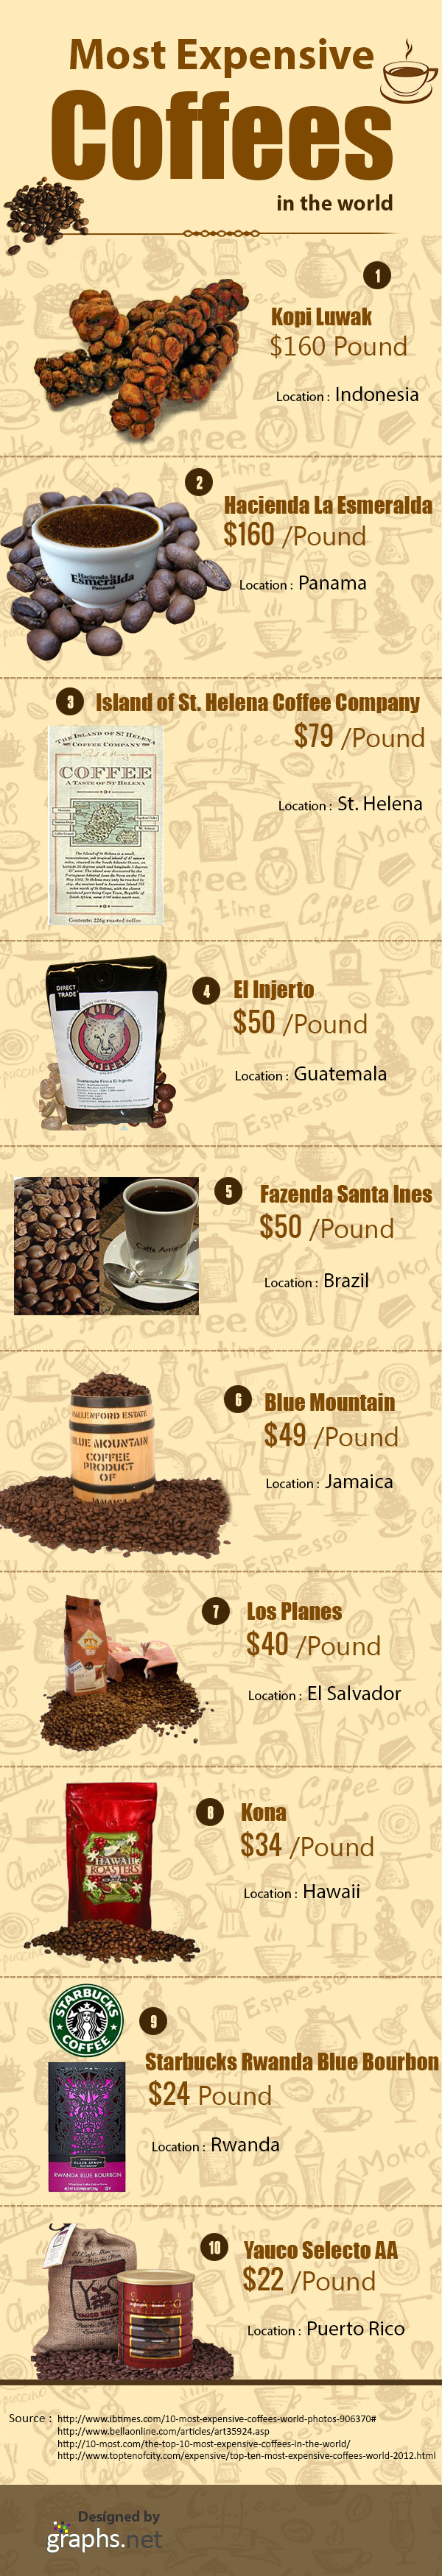 Most-Expensive-Coffees-in-the-world